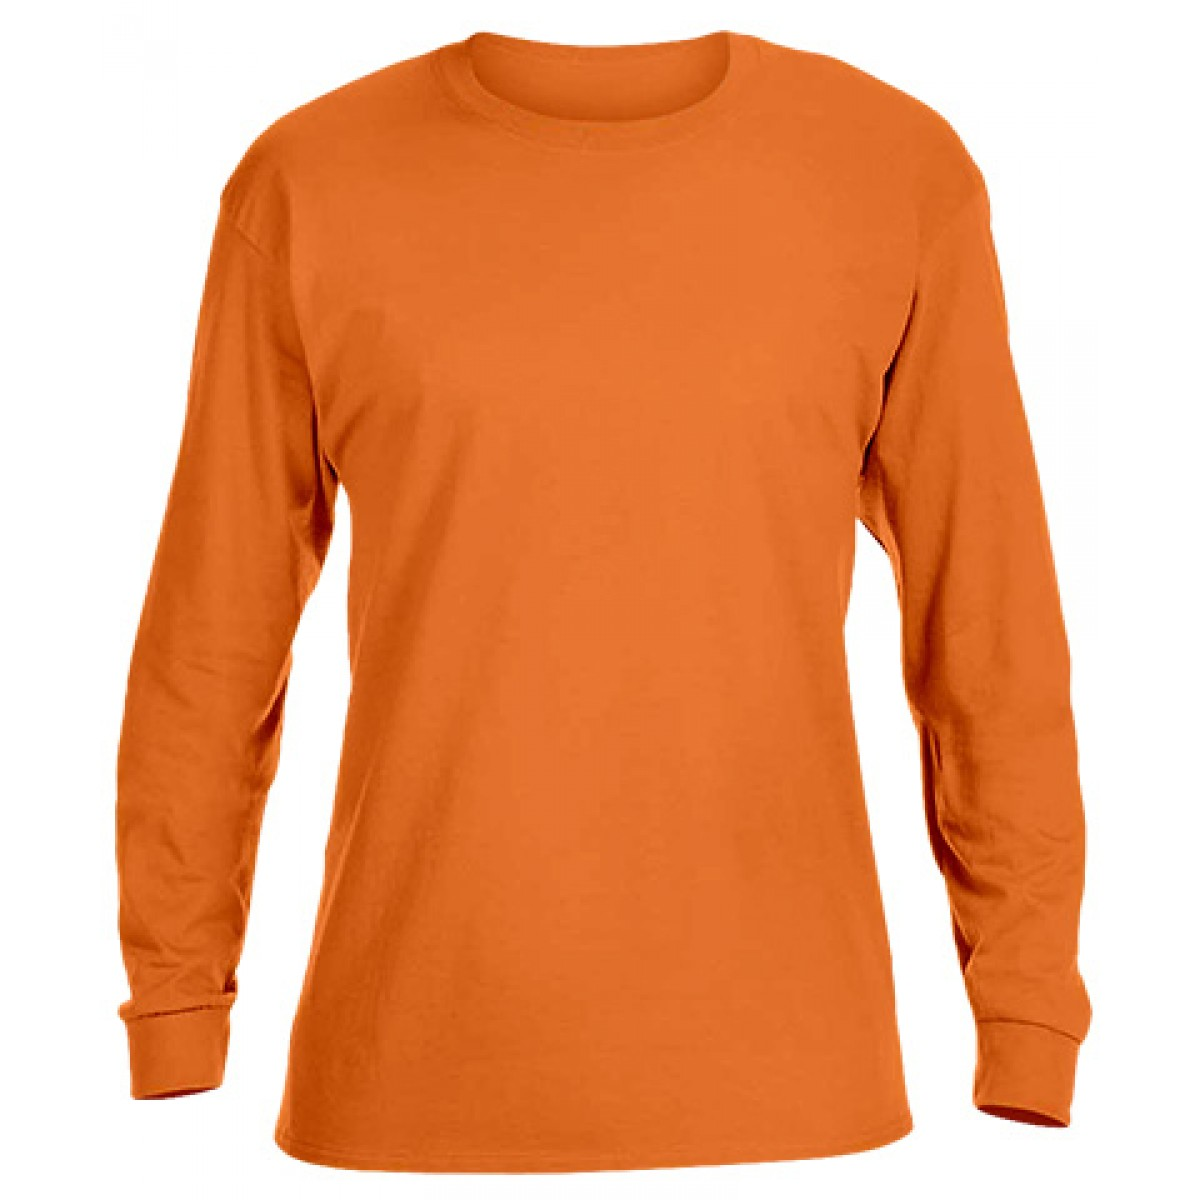 Basic Long Sleeve Crew Neck -Orange-M